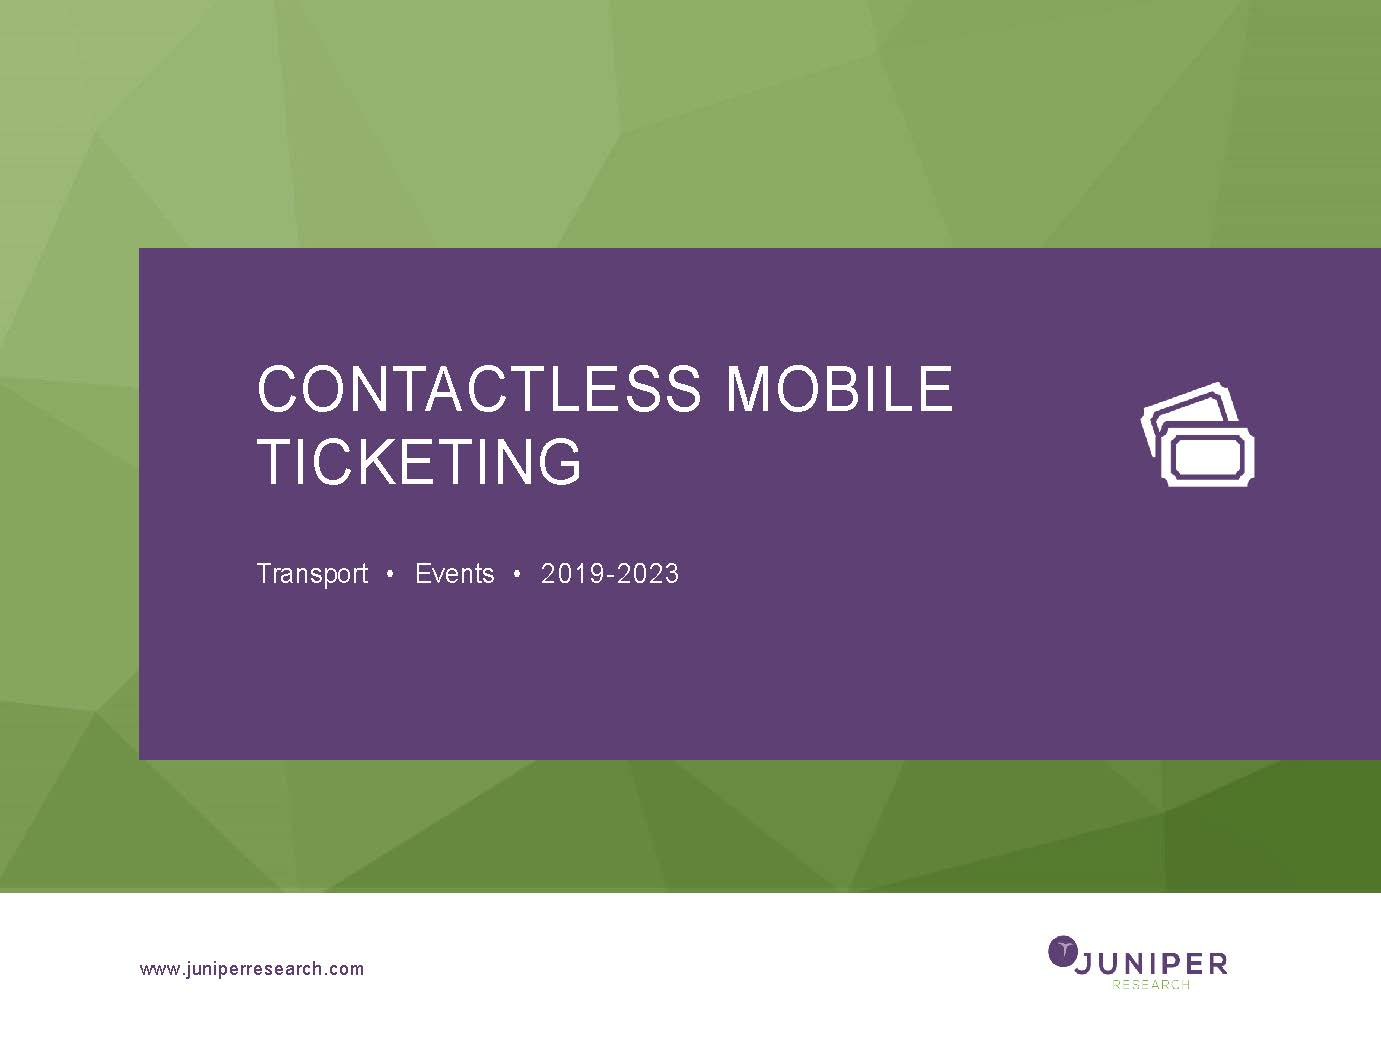 Contactless Mobile Ticketing 2019-2023